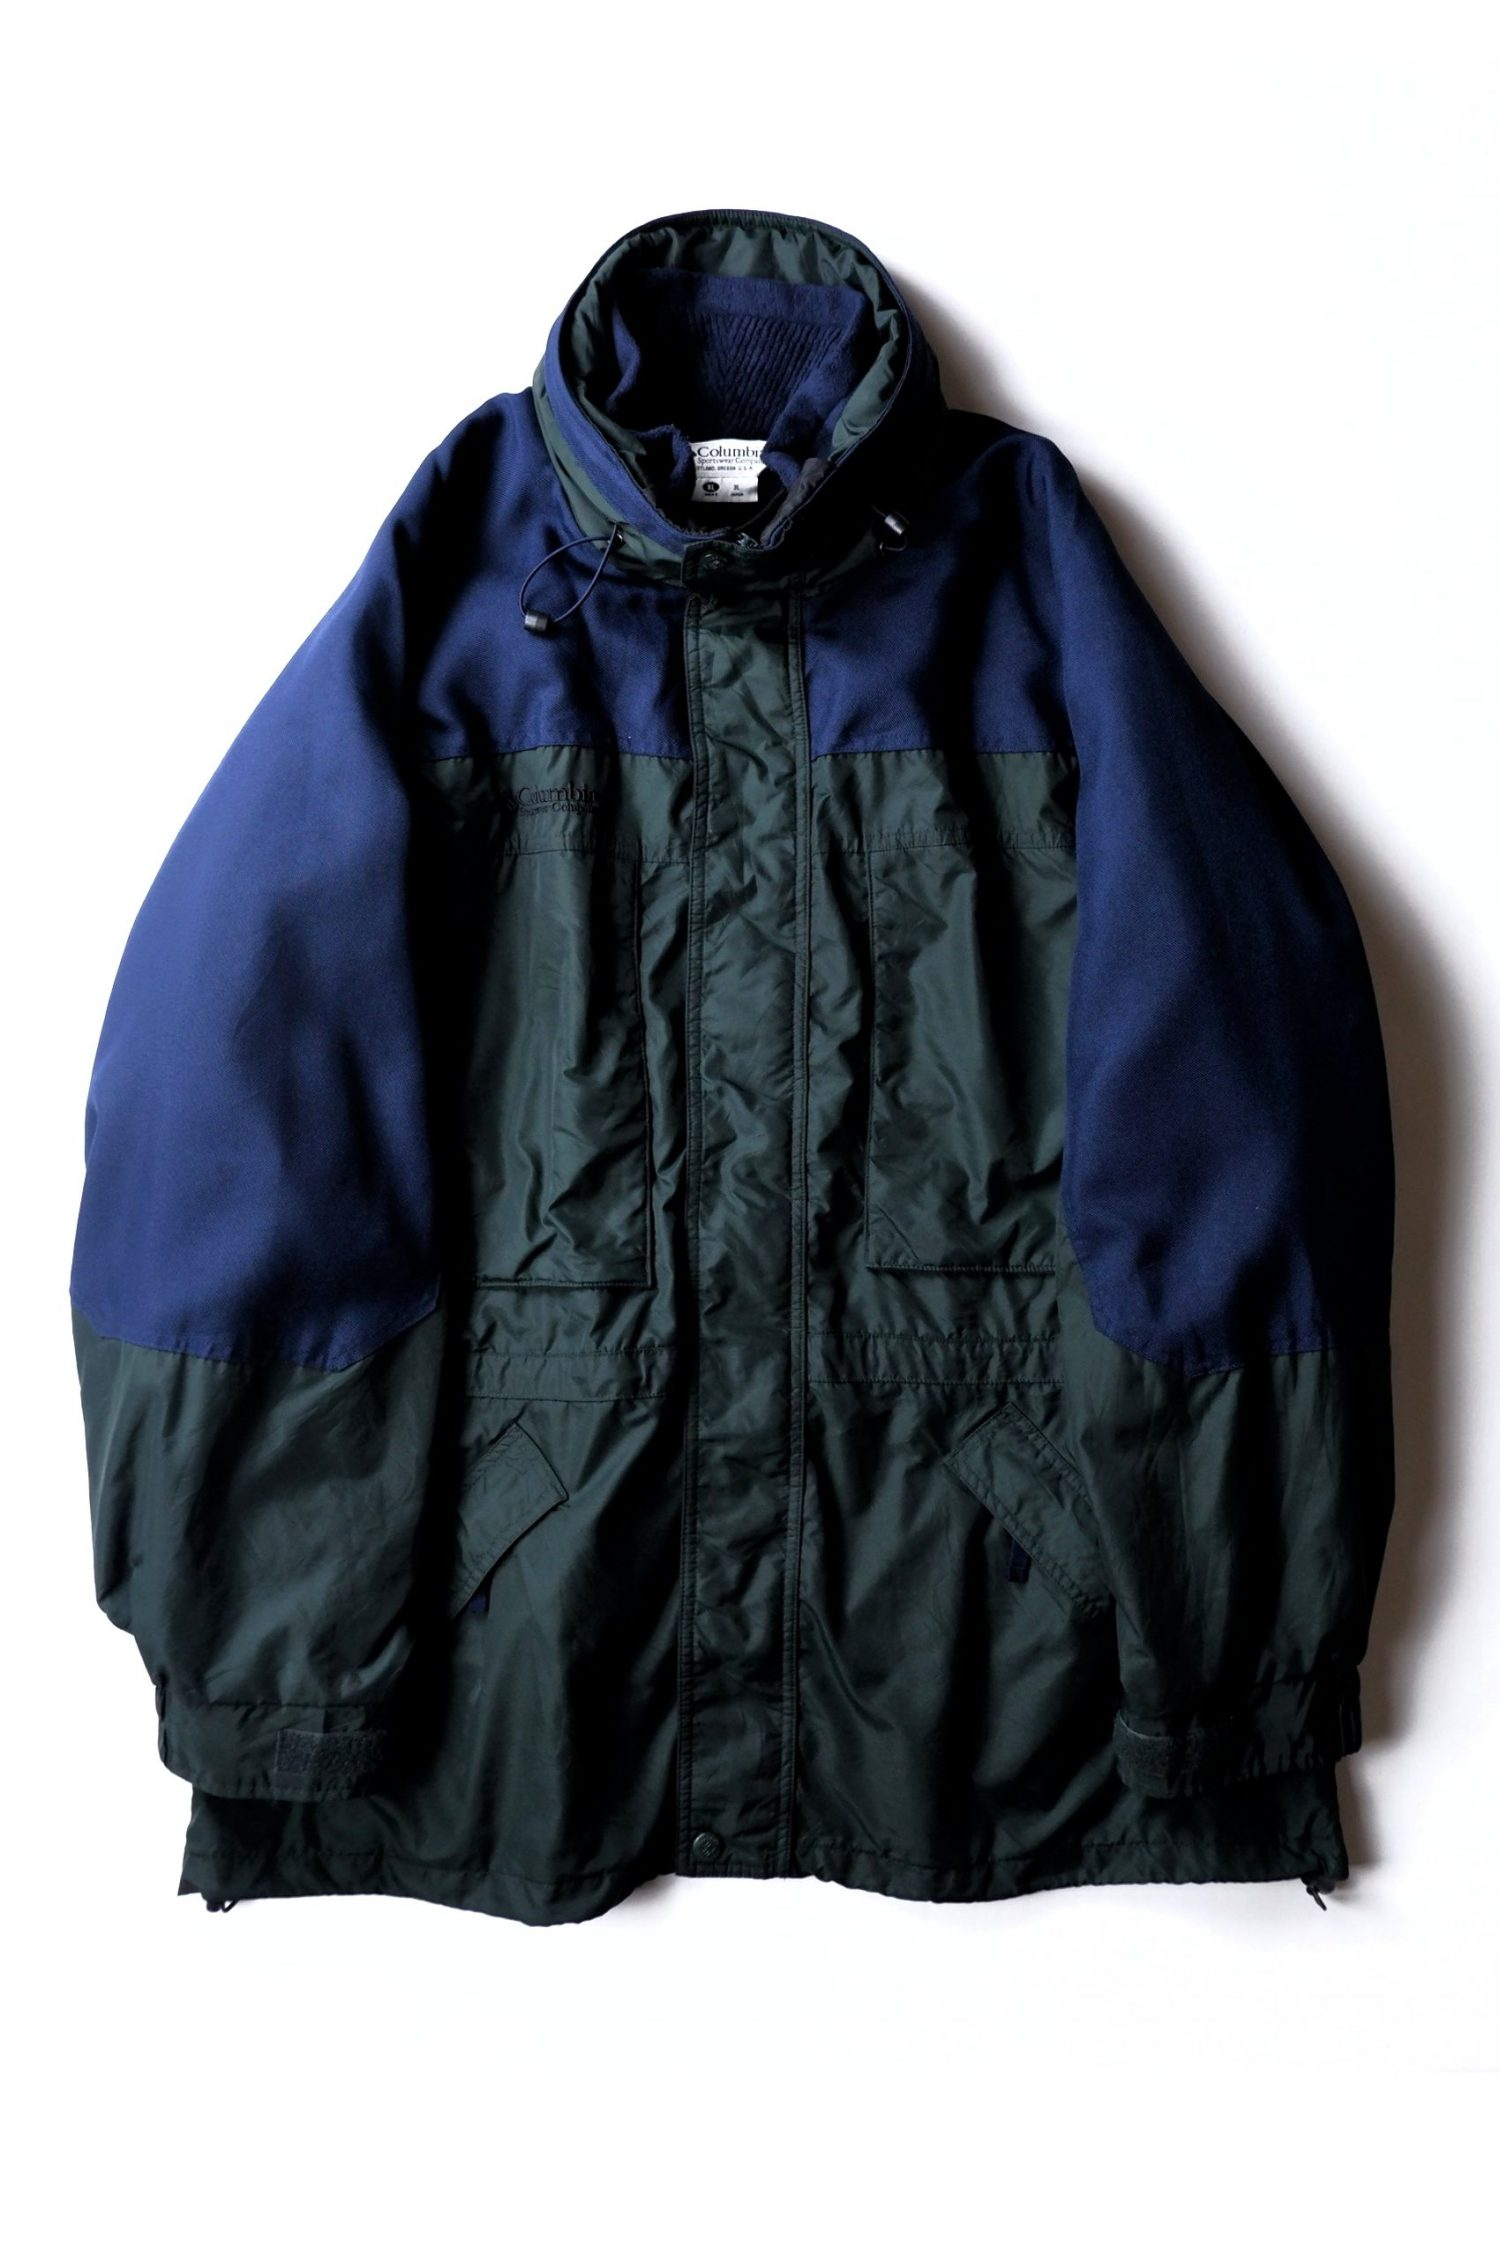 USED Columbia Jacket